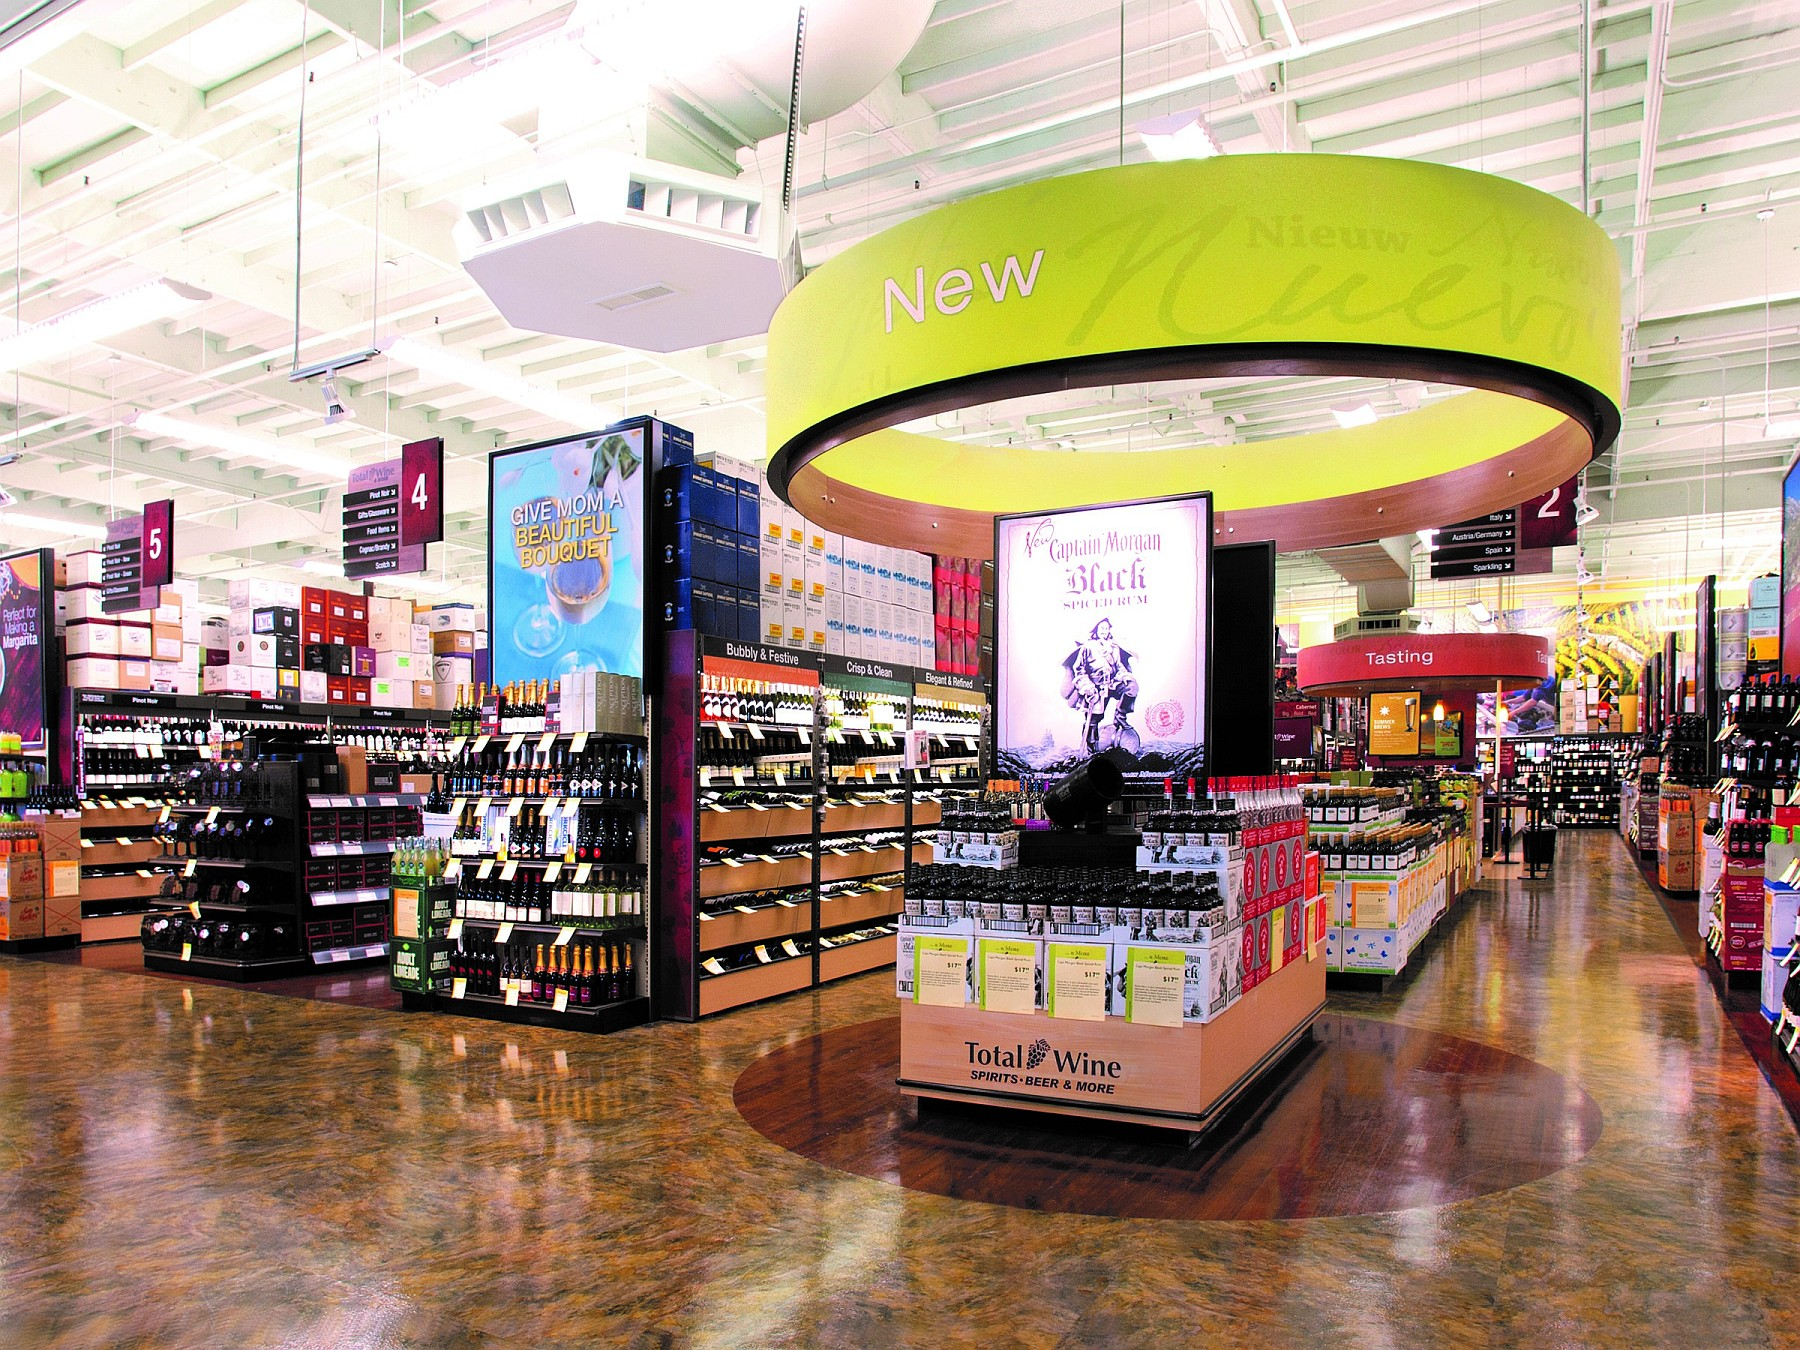 Total Wine - New